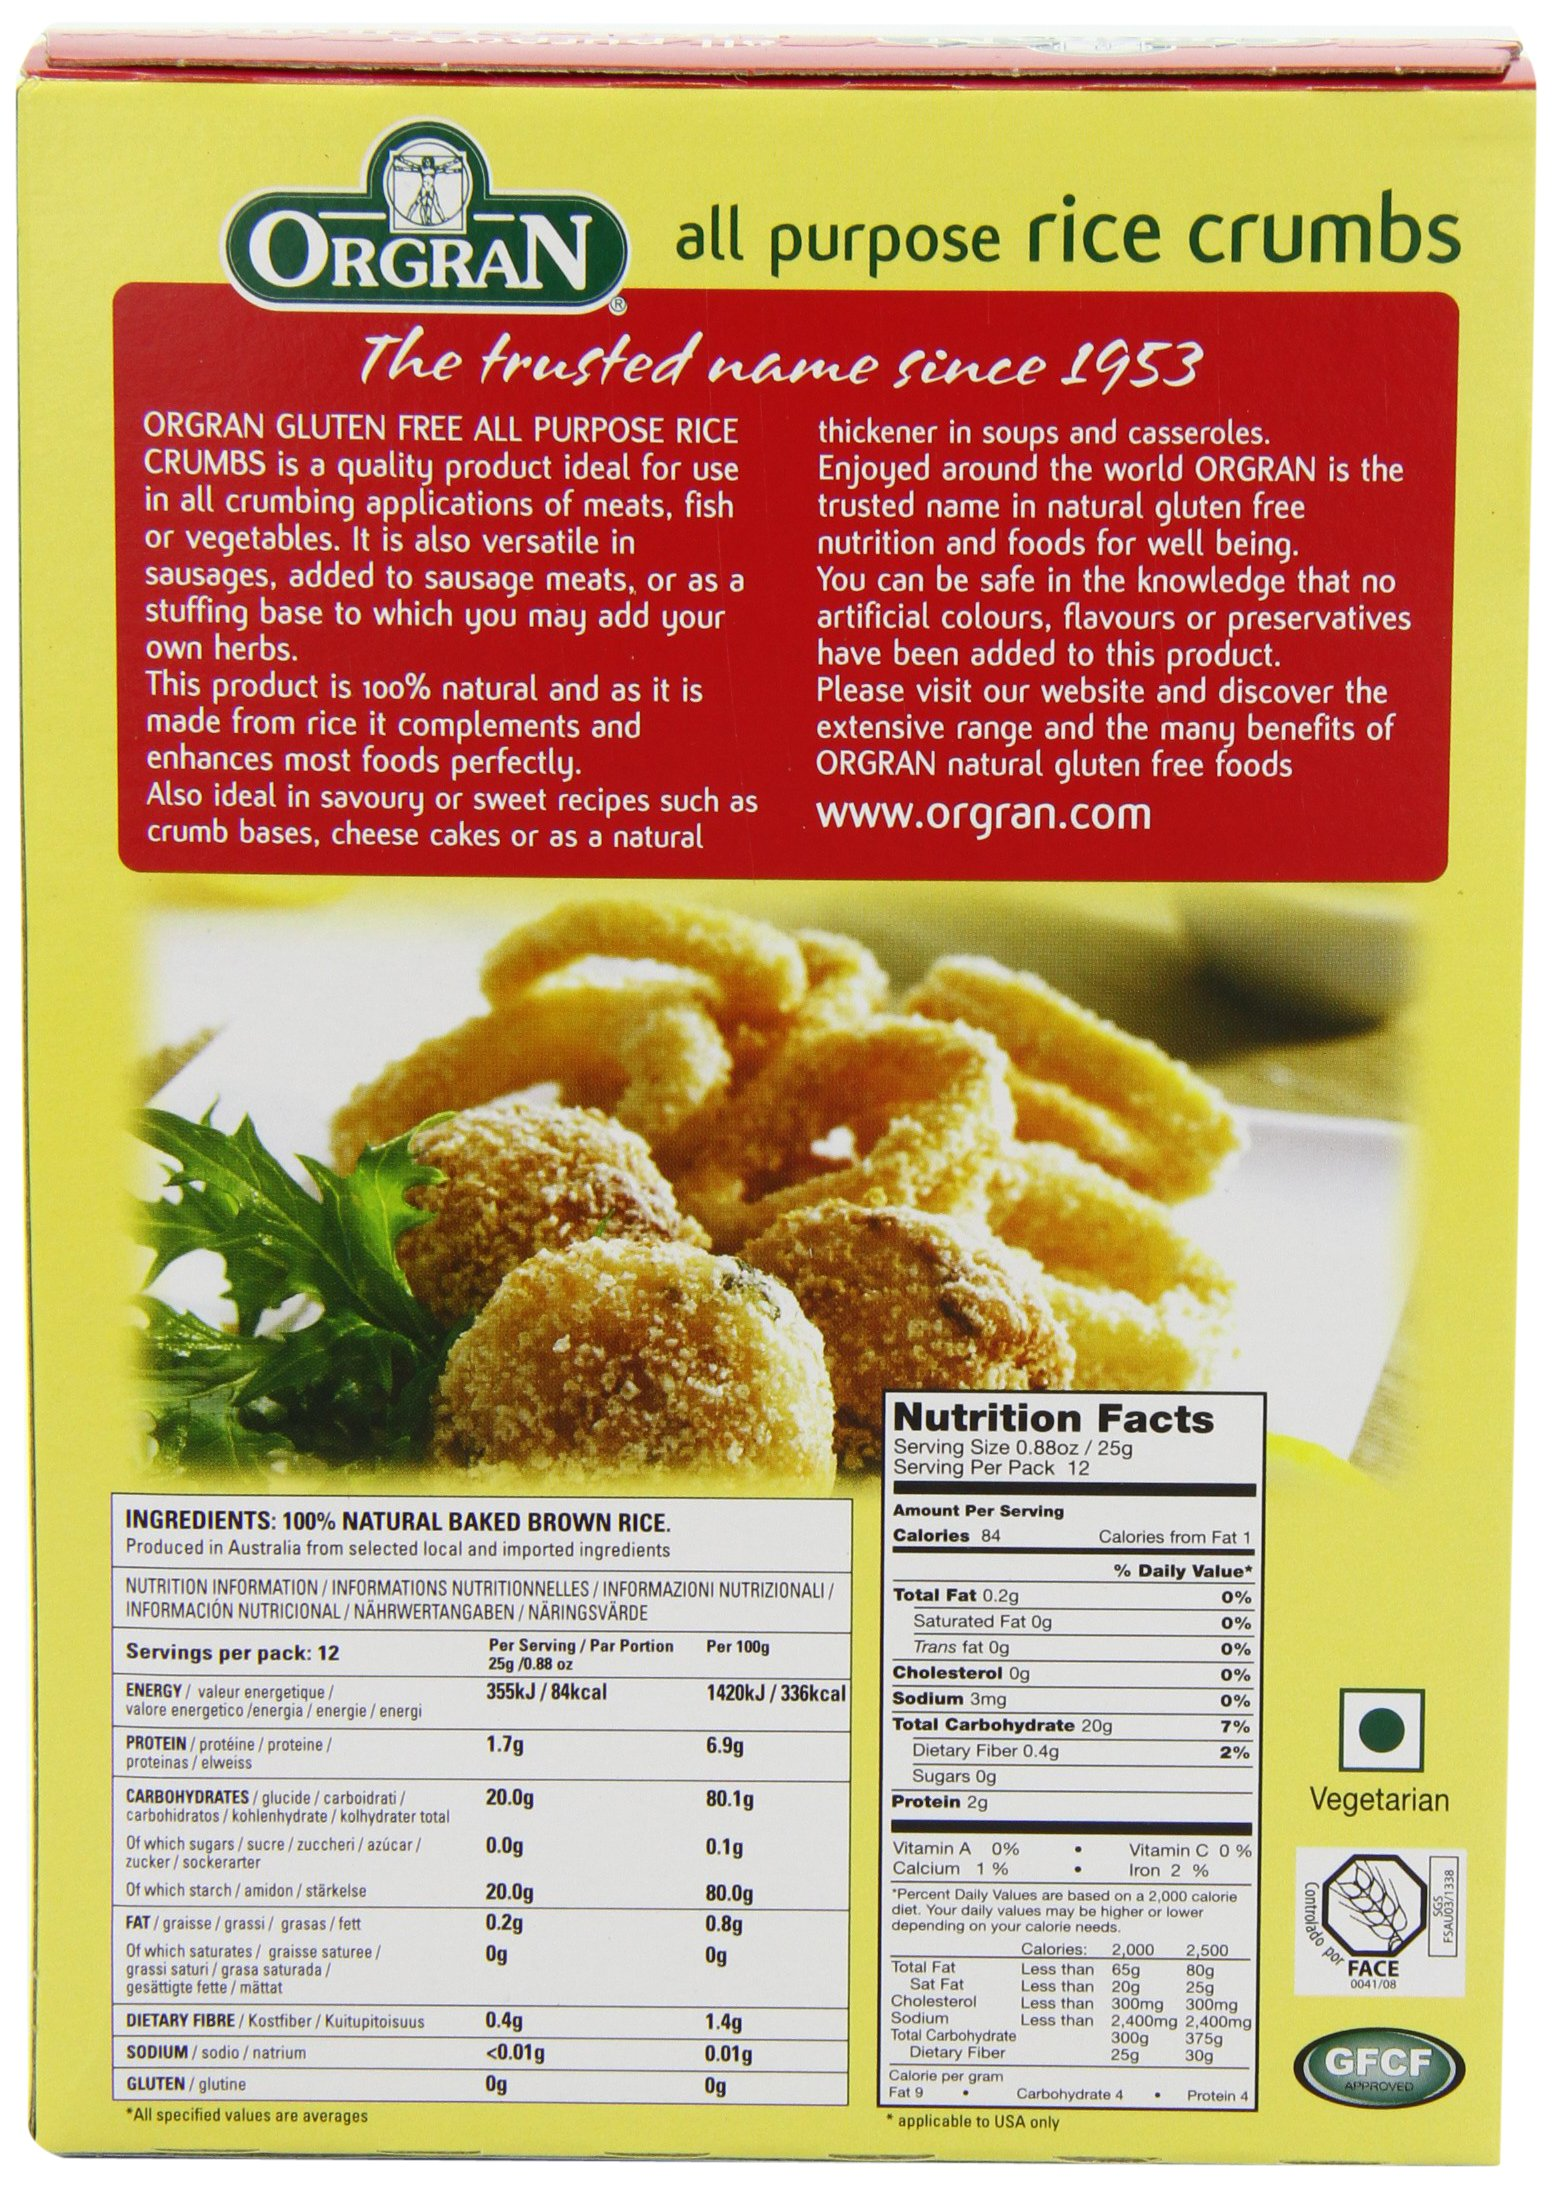 OrgraN All Purpose Rice Crumbs, 10.5-Ounce Boxes (Pack of 8) by Orgran (Image #5)